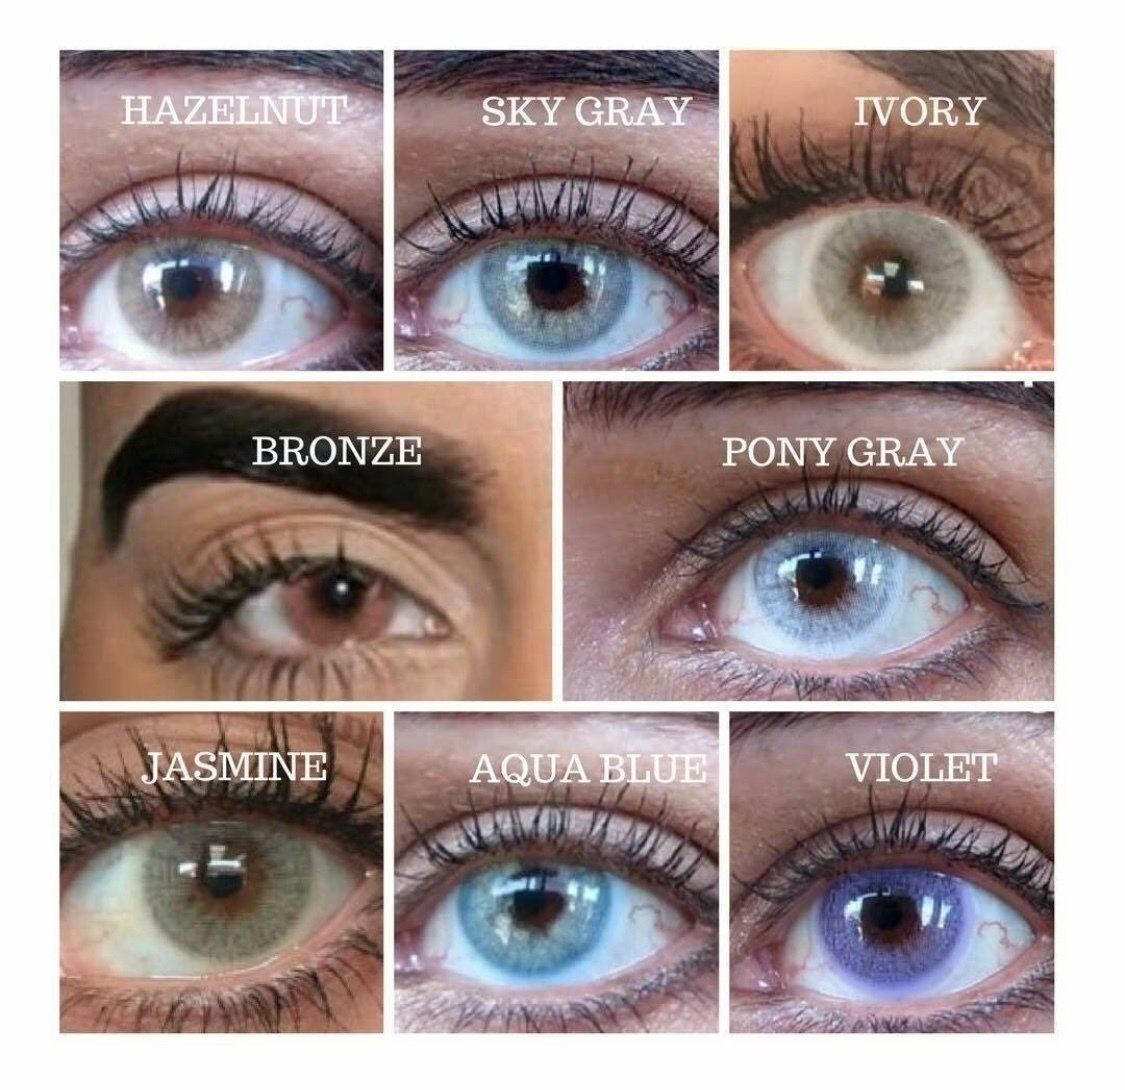 The Best Non Prescription Super Natural Contact Lenses For Brown Eyes And Light Col Natural Contact Lenses Contact Lenses Colored Contact Lenses For Brown Eyes